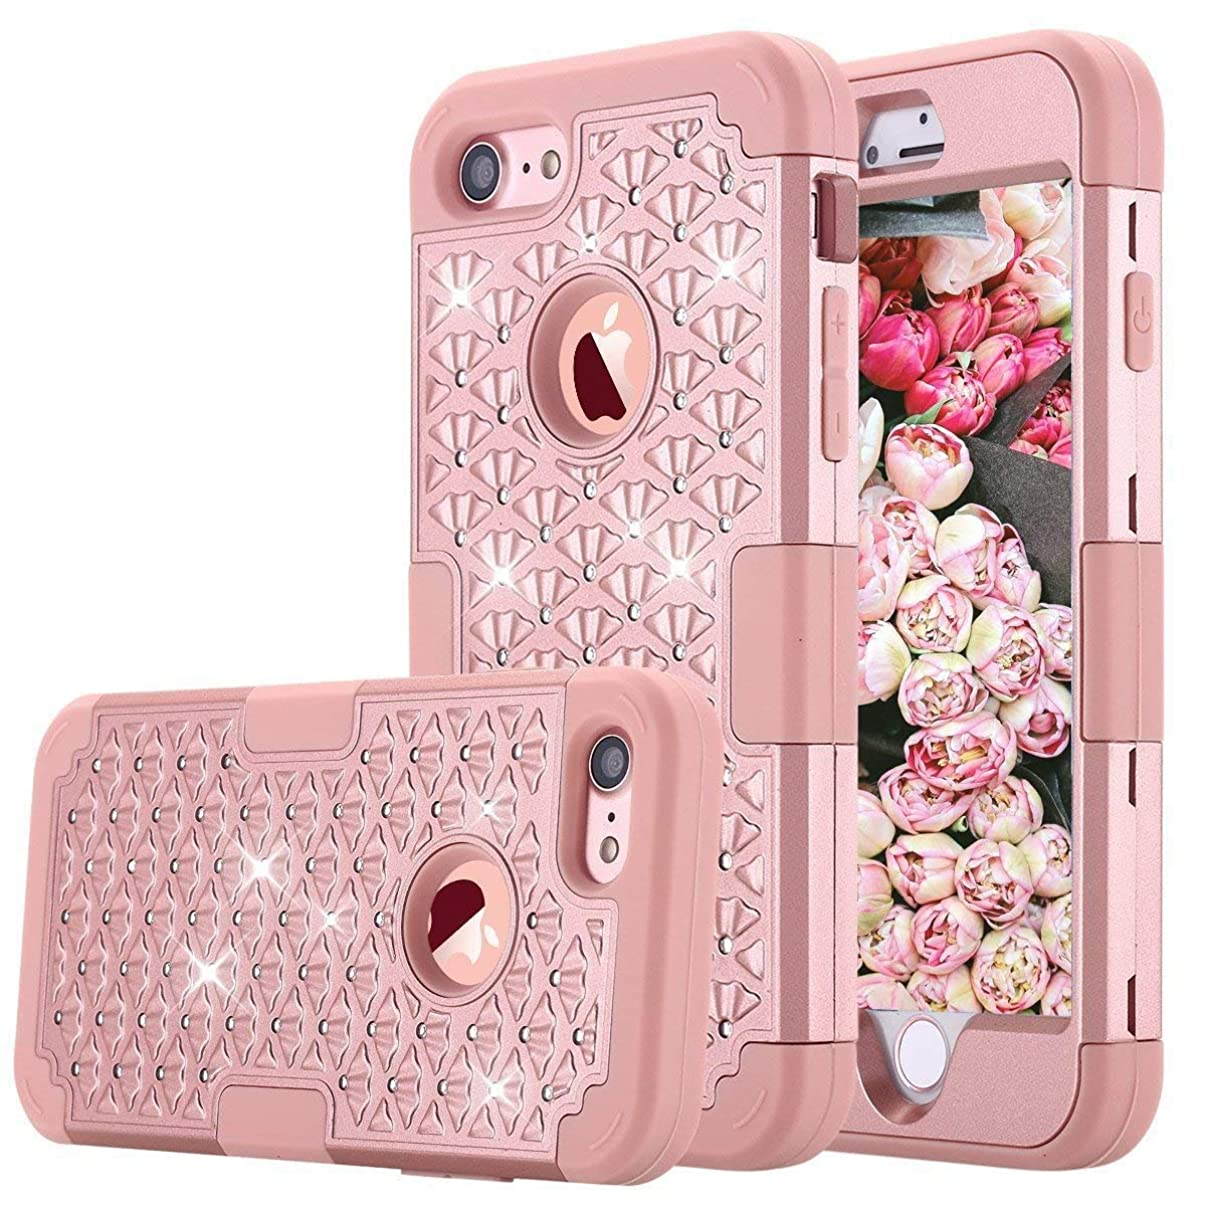 iPhone 7 Case, iPhone 8 Case, KAMII [Diamond Series] 3 in 1 Hard PC+Silicone Hybrid Shock Absorption/High Impact Full Body Protection Defender Case Cover for Apple iPhone 7/iPhone 8 (Rose Gold)